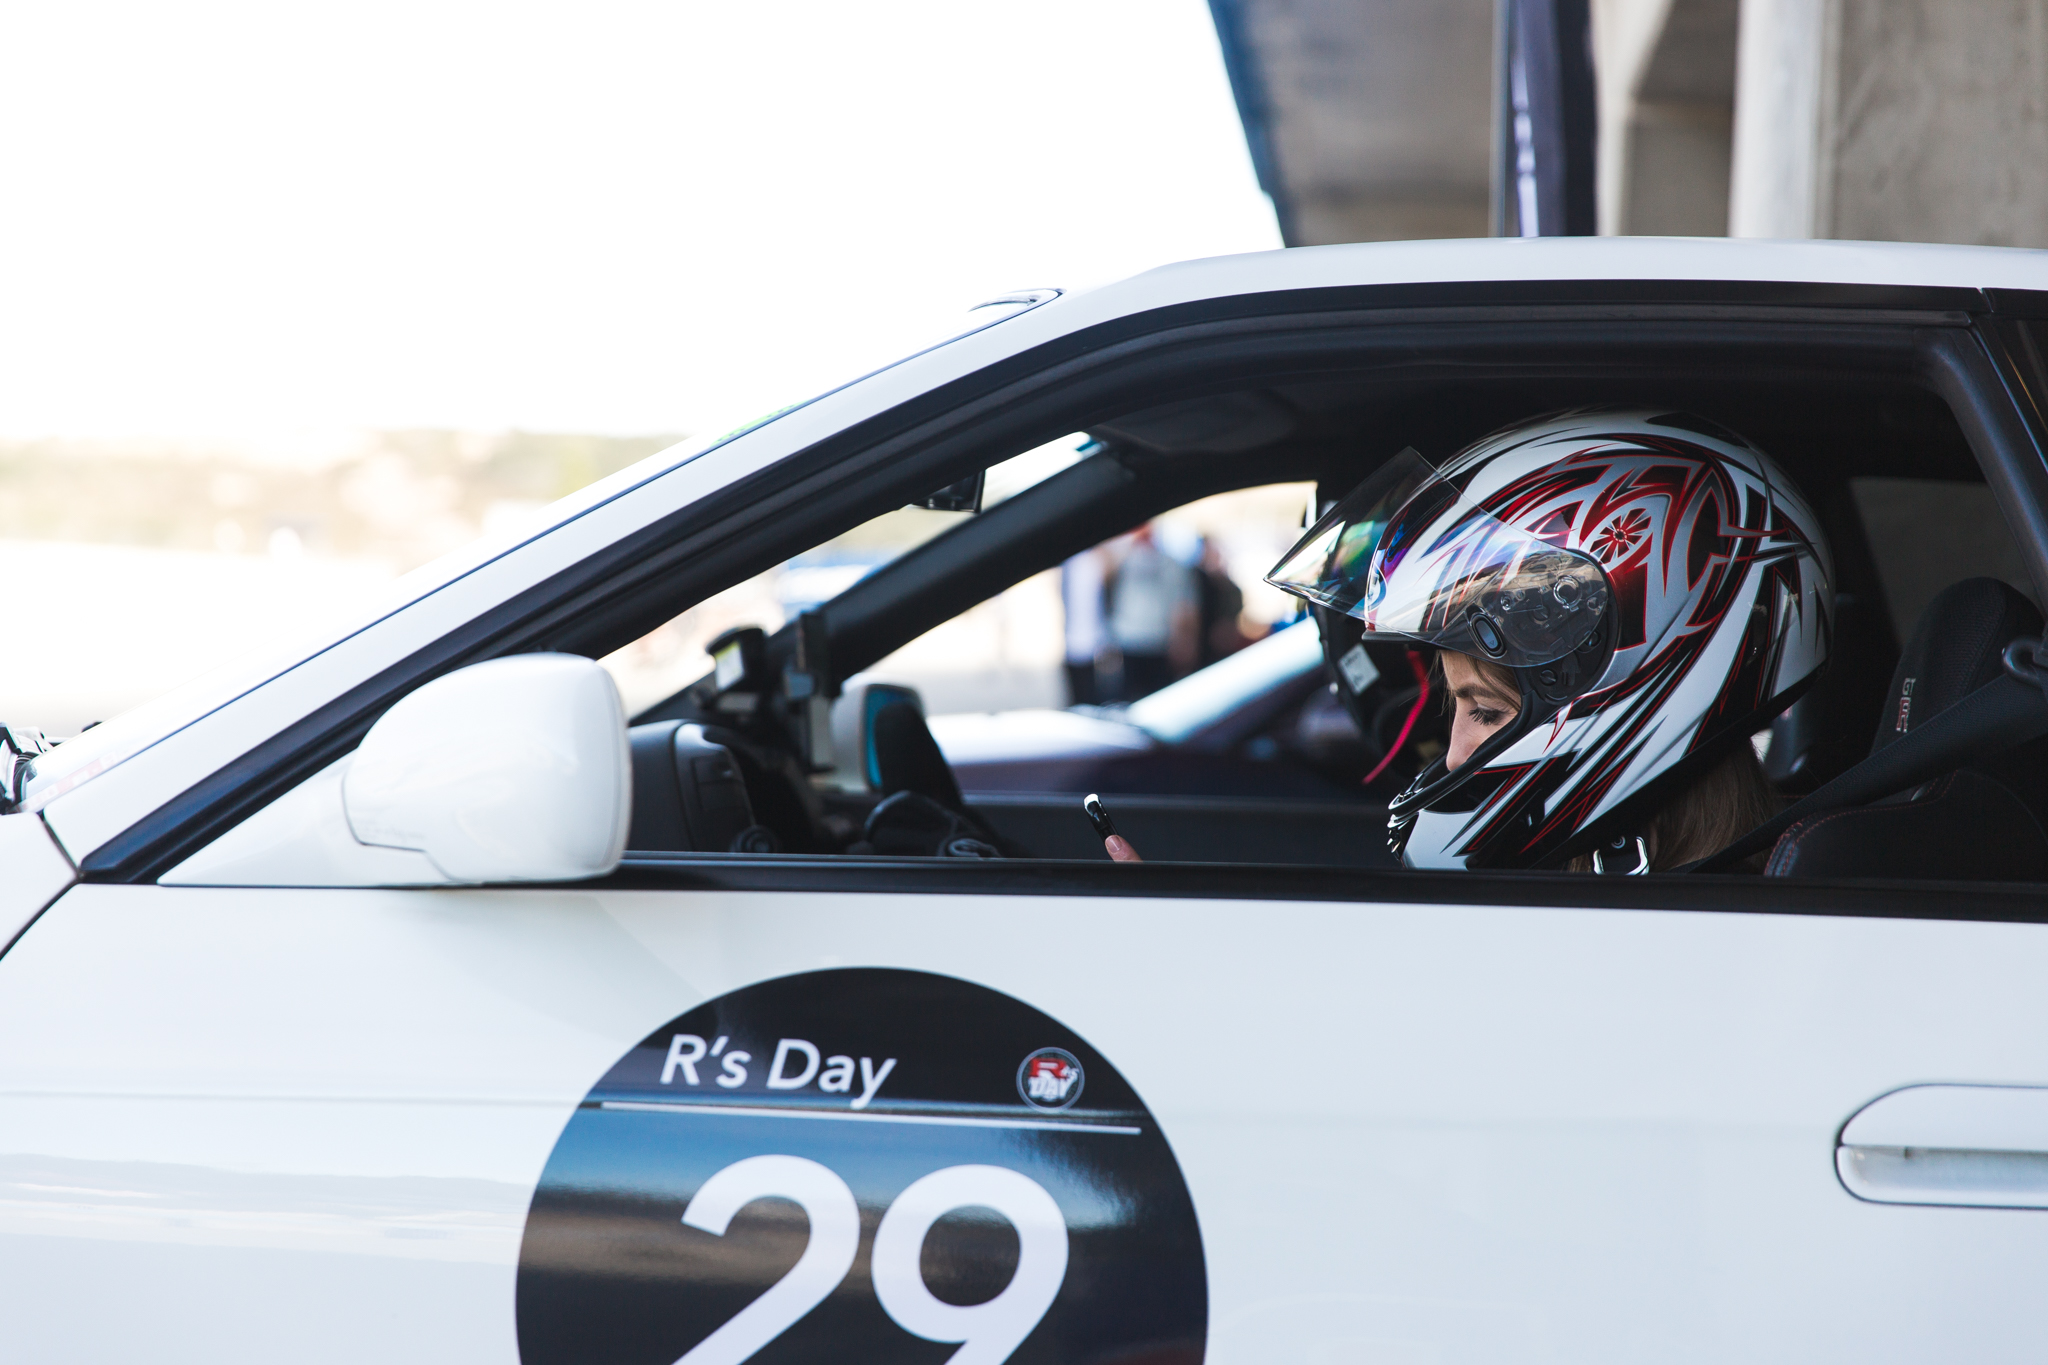 Stay_Driven_Rs_Day-44.jpg